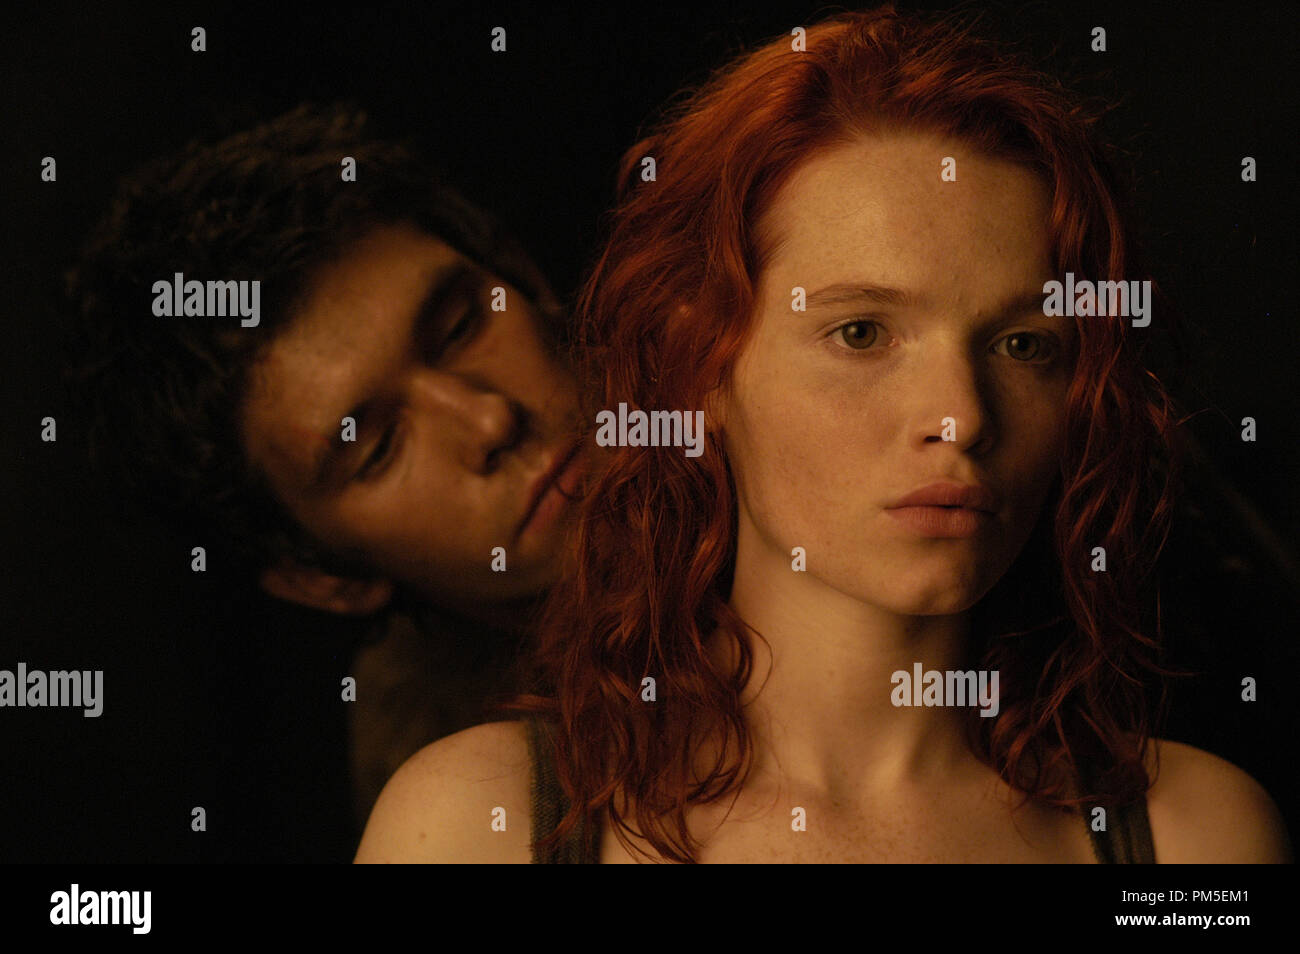 perfume the story of murderer full movie free download